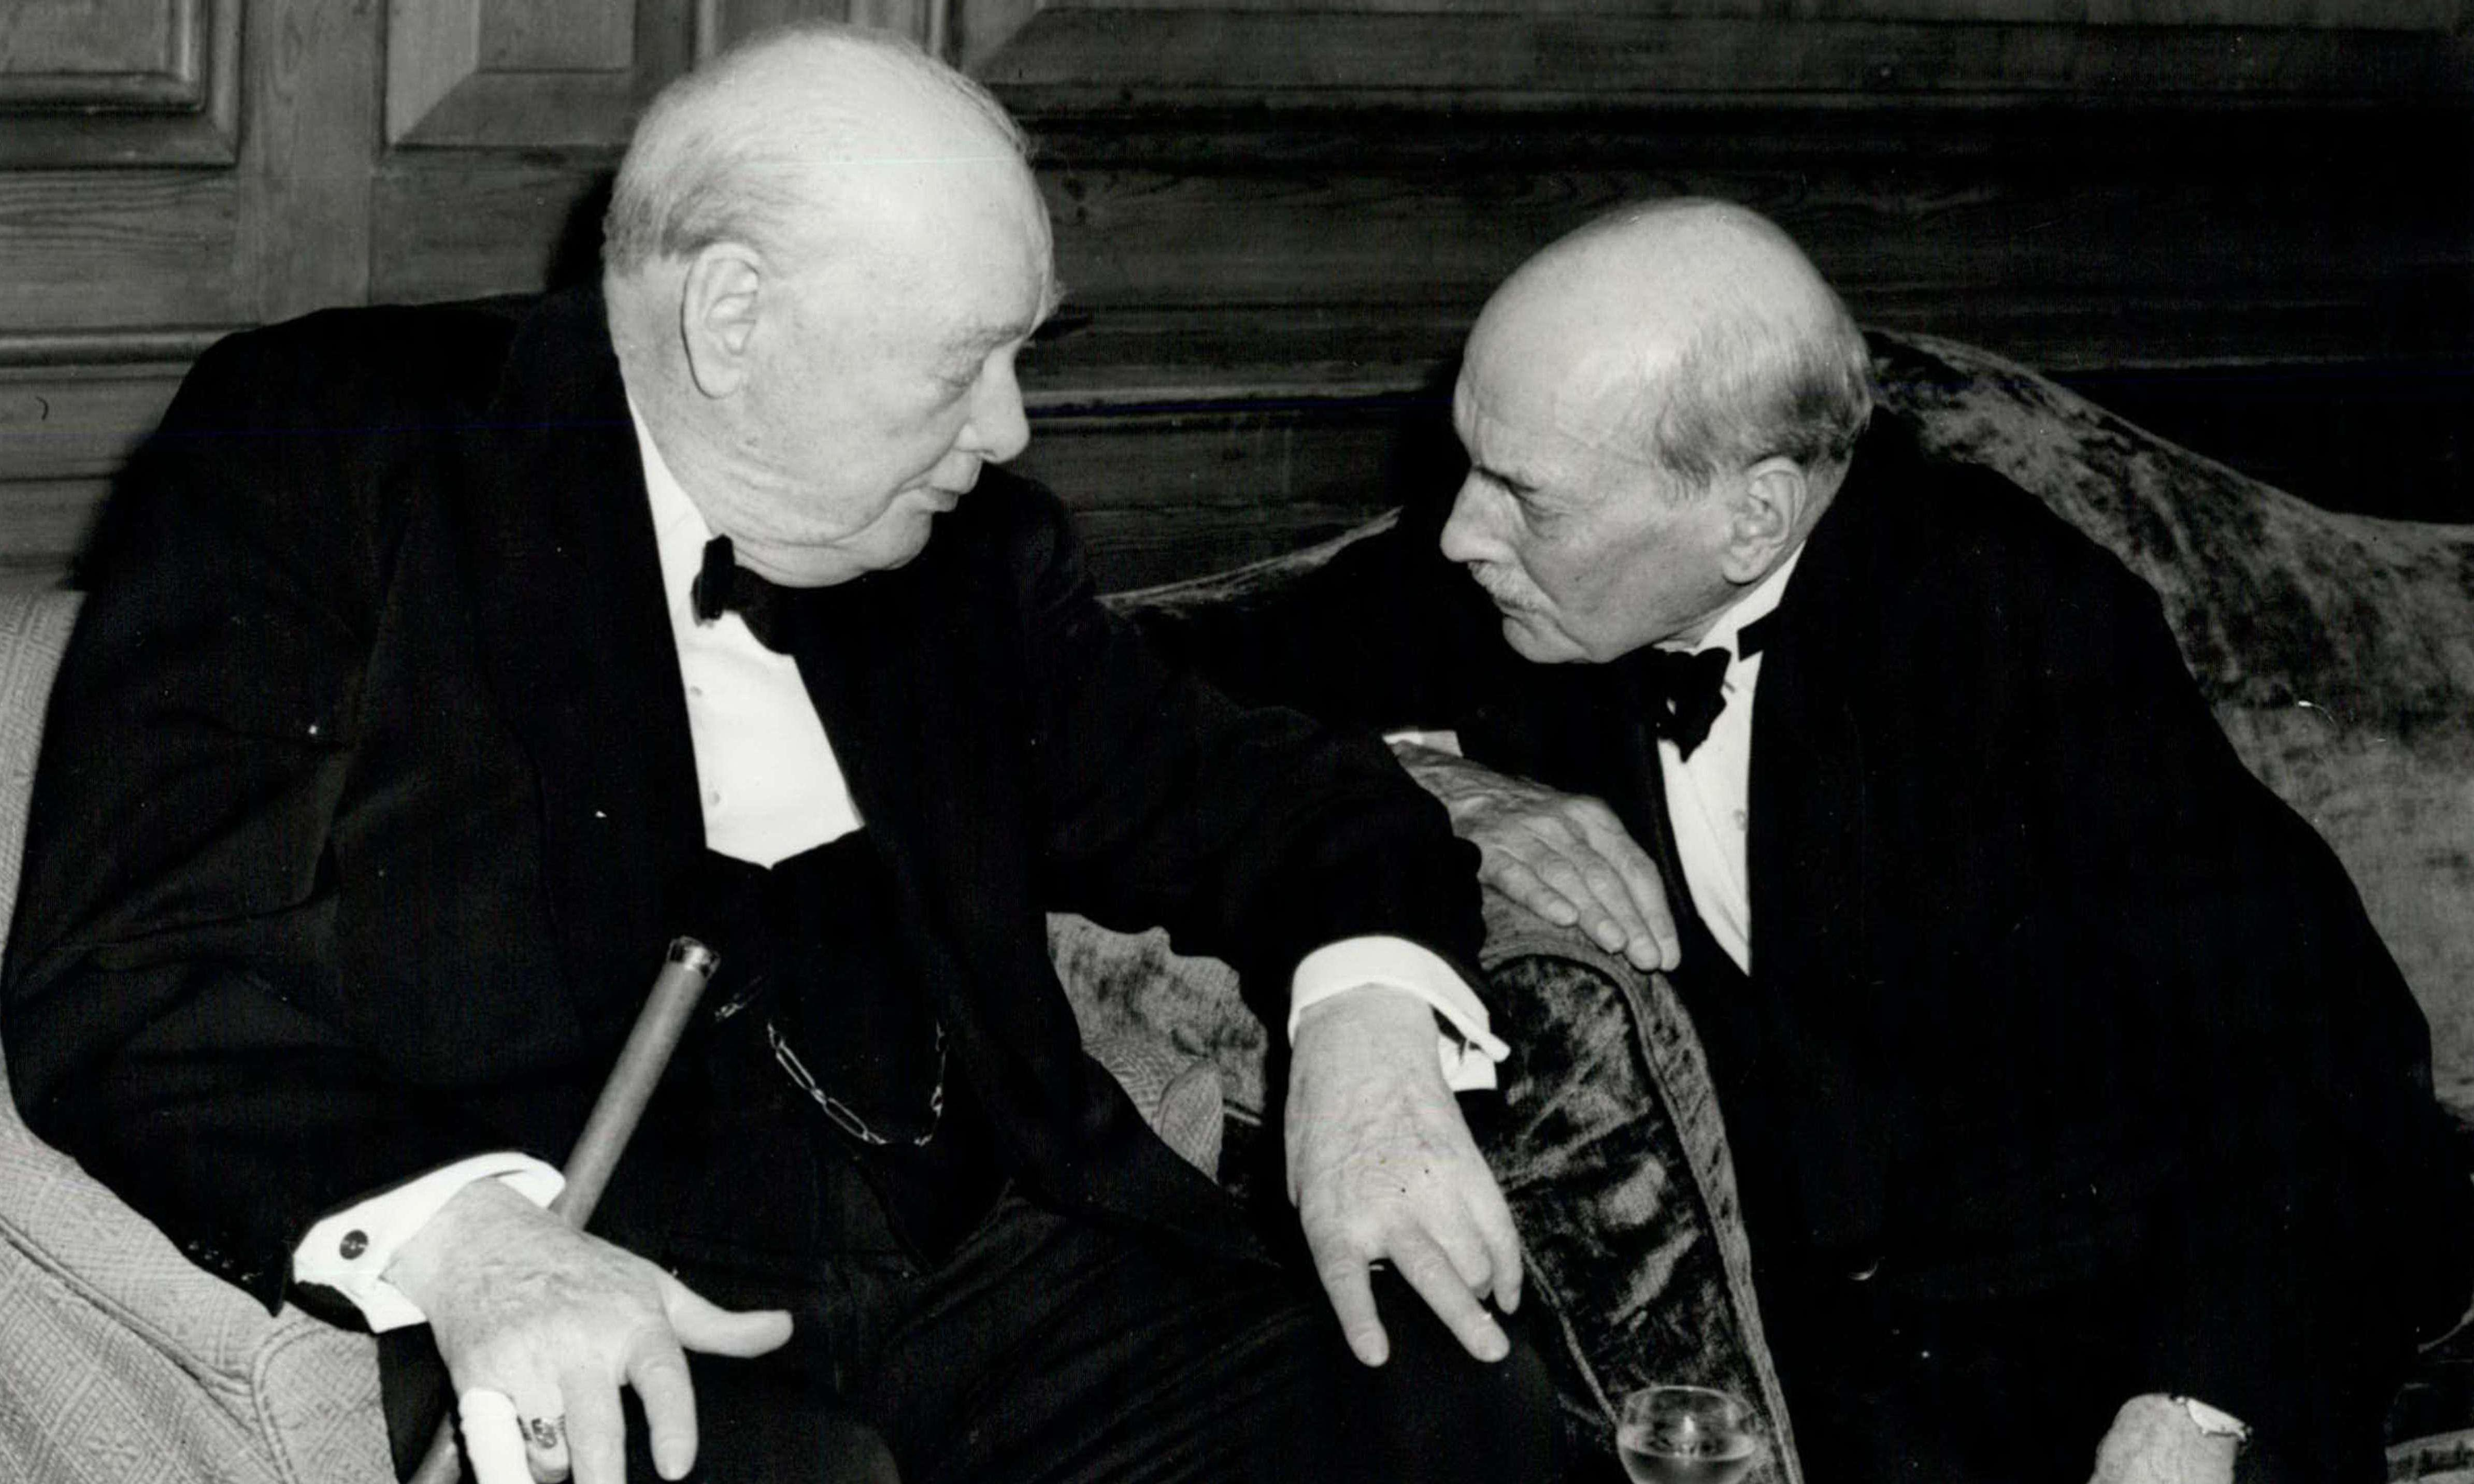 Attlee and Churchill review – a deft account of a terrific double act